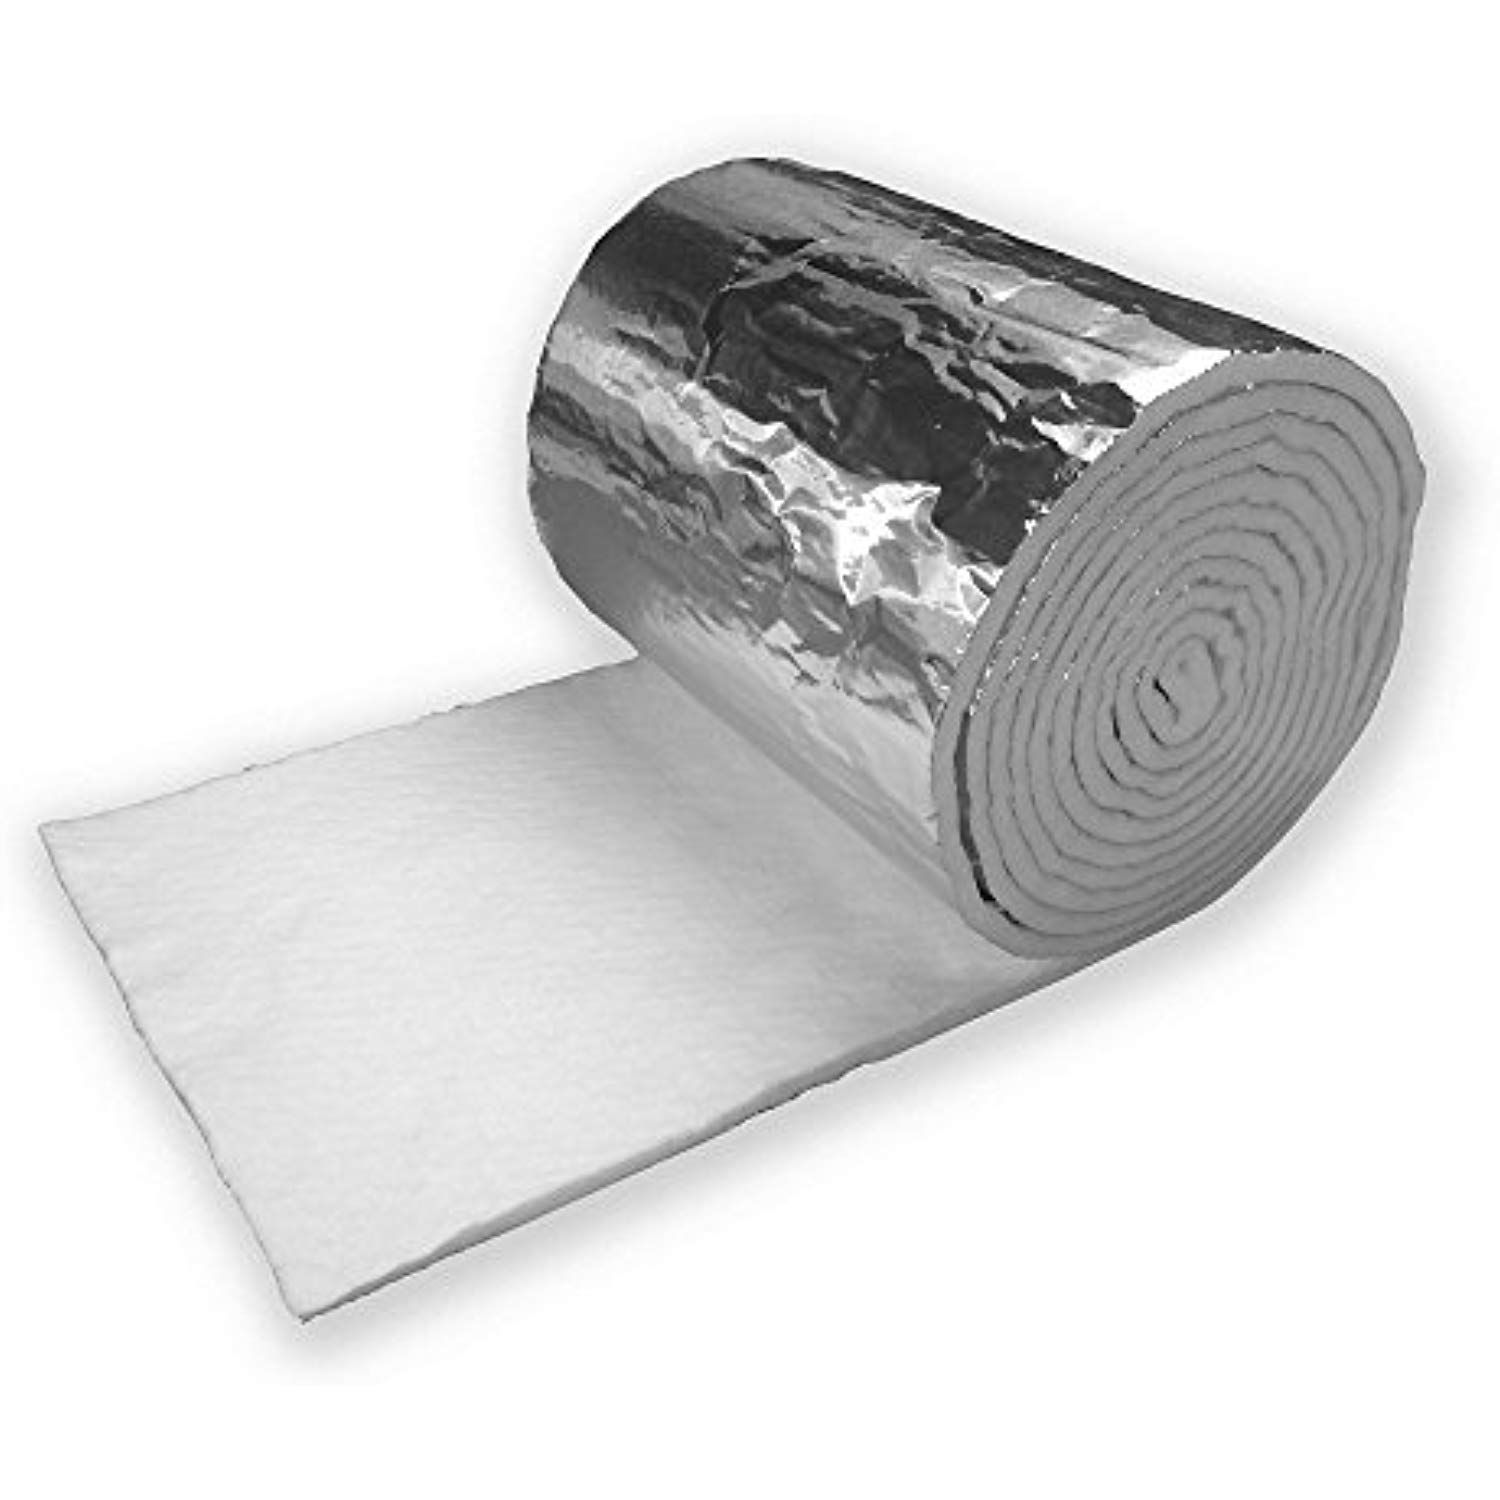 1 2 X 48 Foil Faced Ceramic Blanket 25 Long More Info Could Be Found At The Image Url Heatingcool Blanket Insulation Heating And Cooling Air Quality